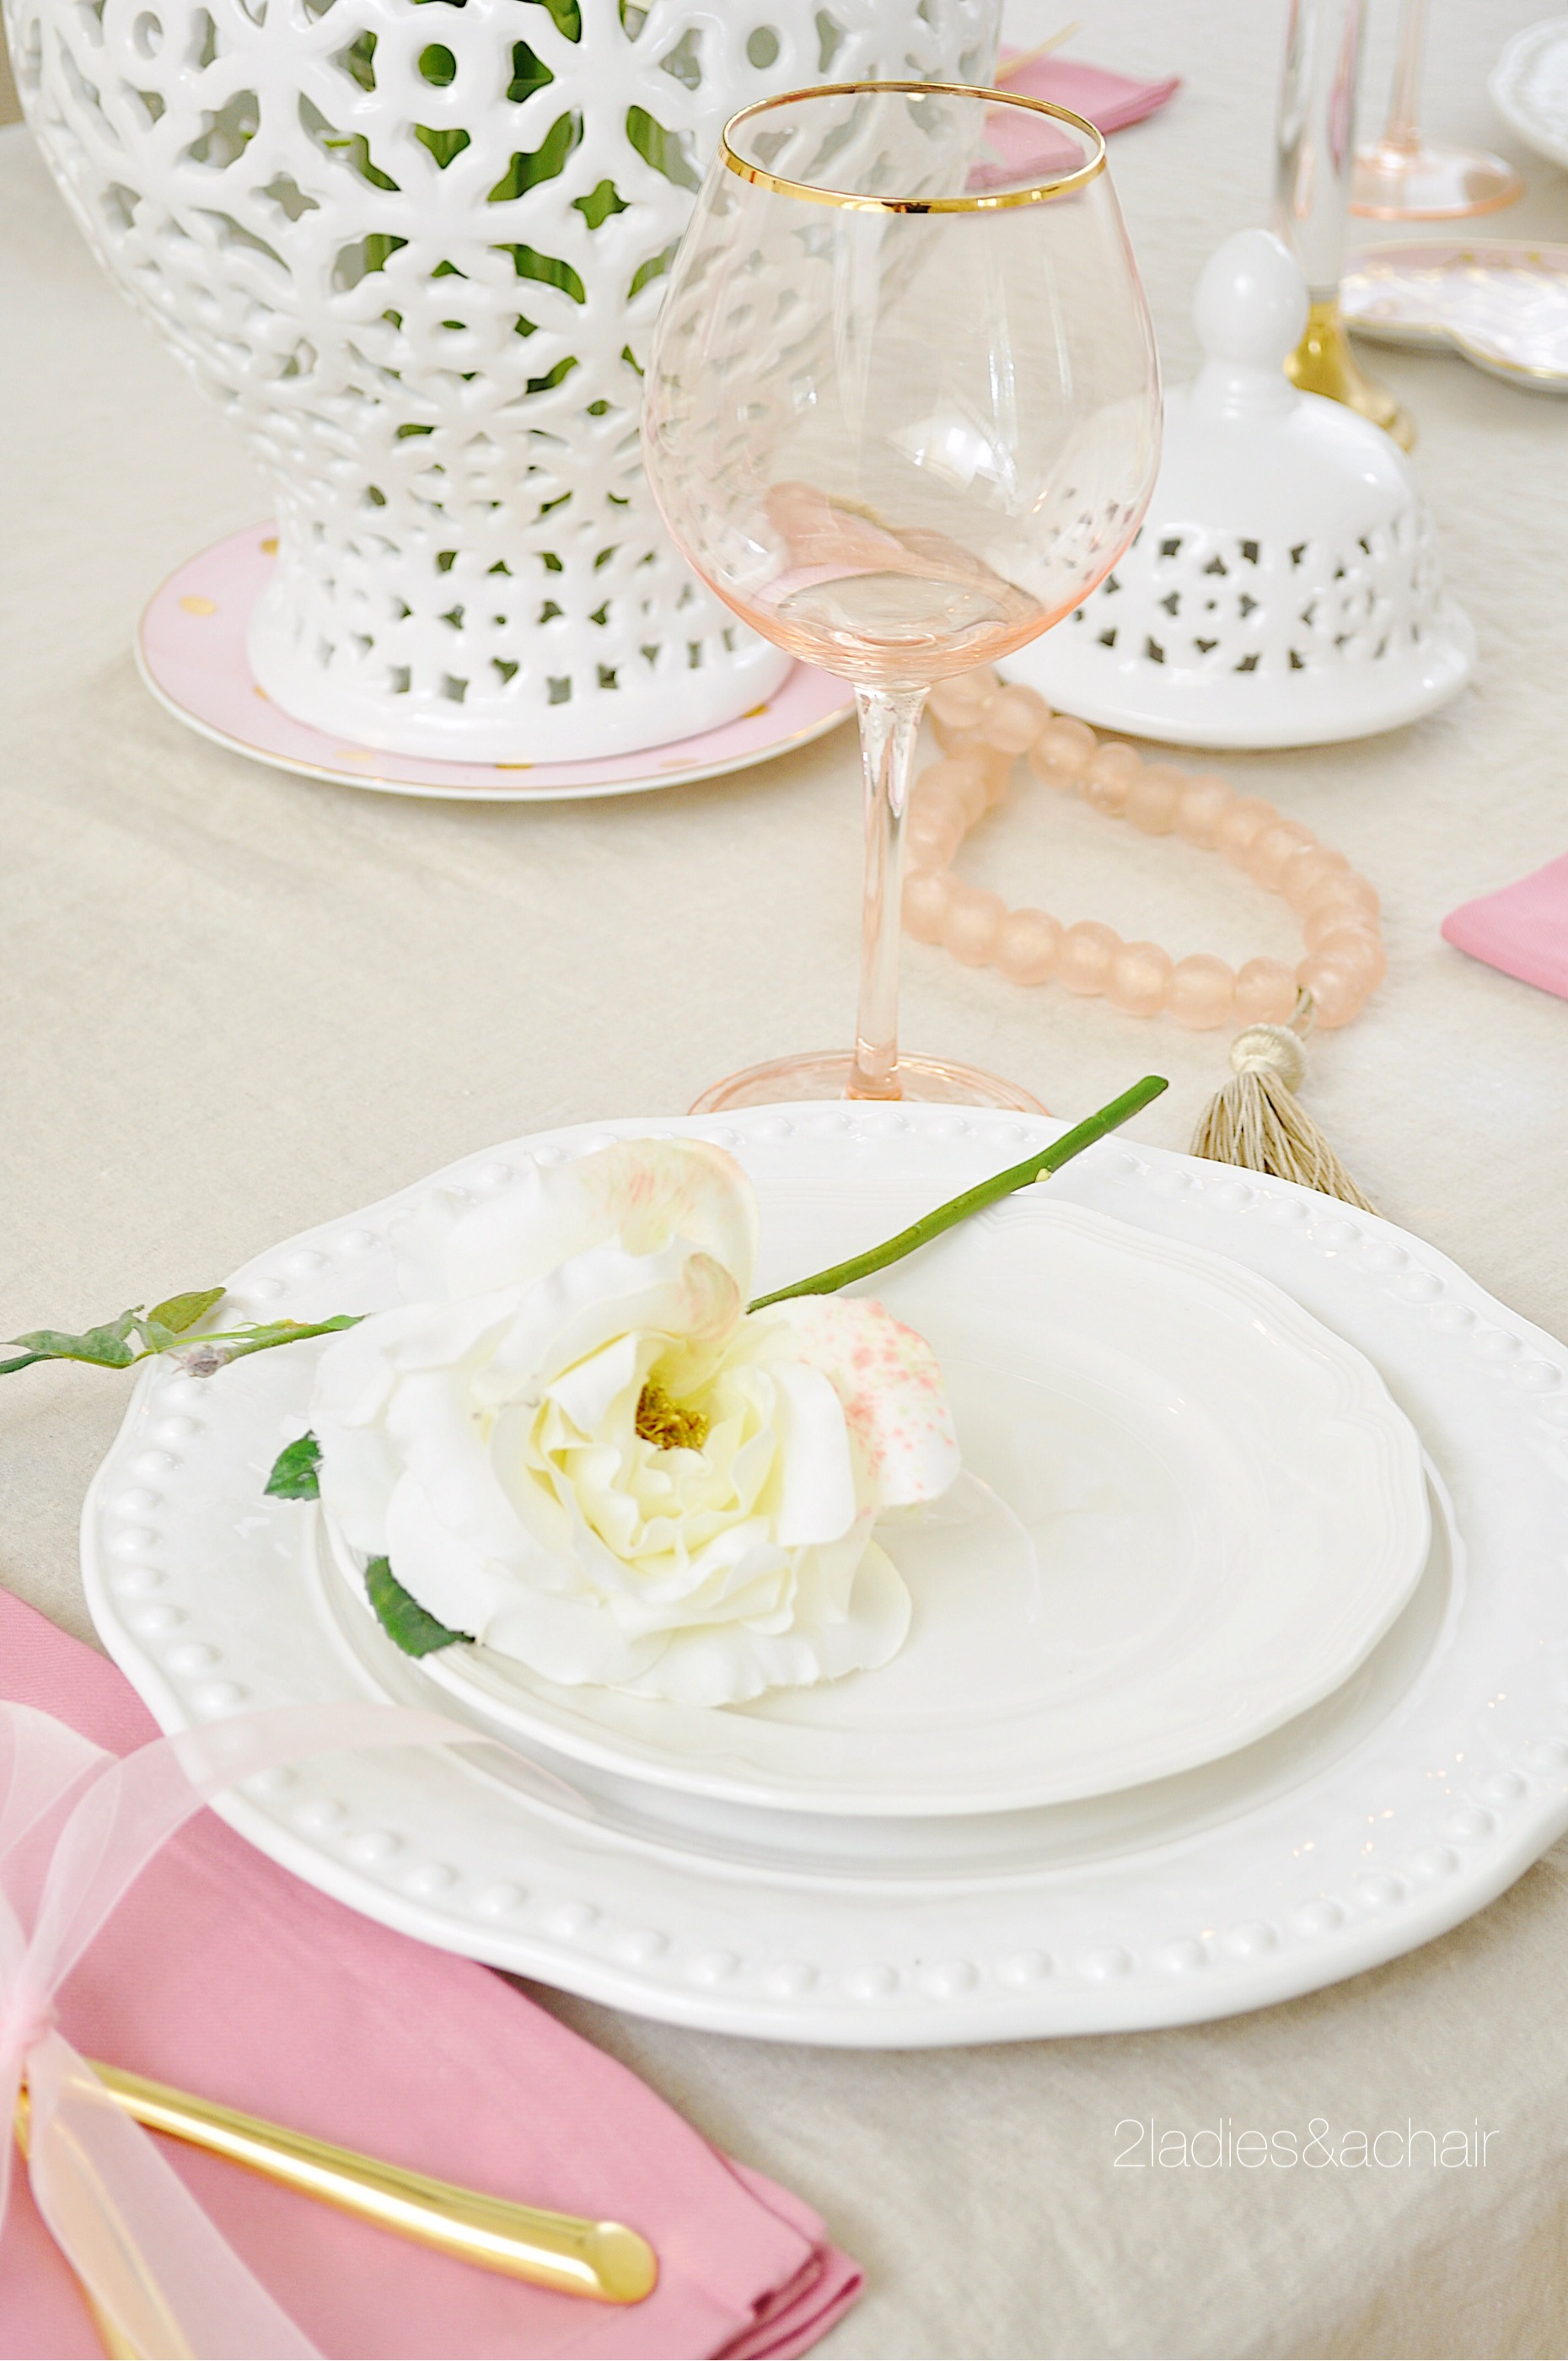 valentine's day table decor IMG_8948.JPG